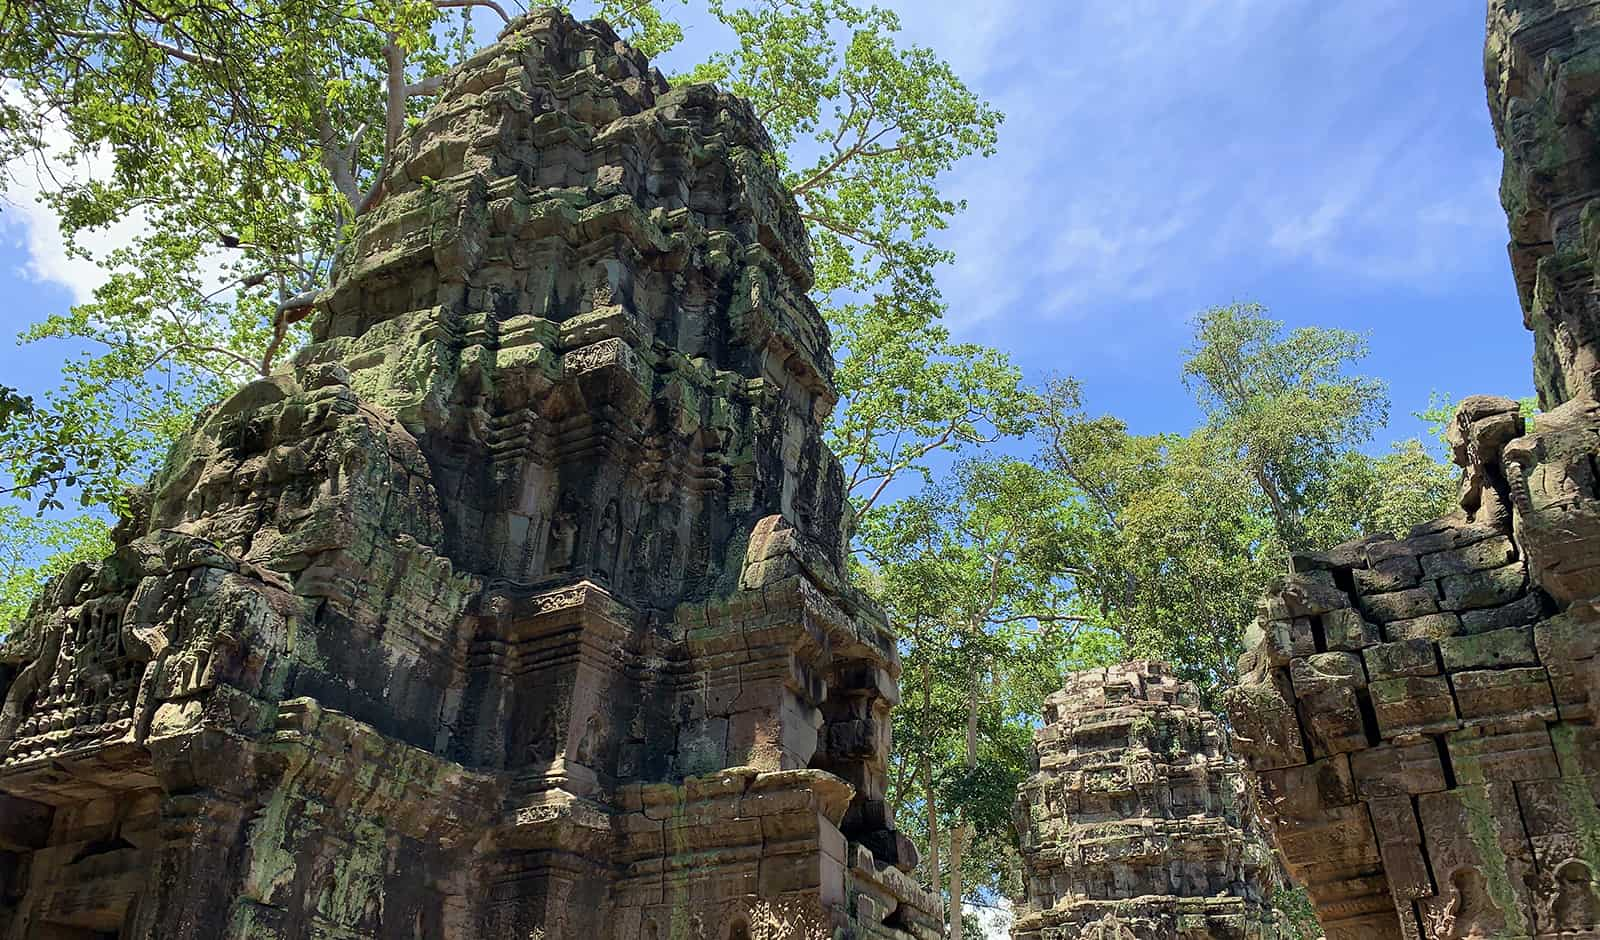 The-Top-Temples-to-See-in-Angkor-Ta-Prohm-Angkor-Wat-Angkor-Thom-main-image